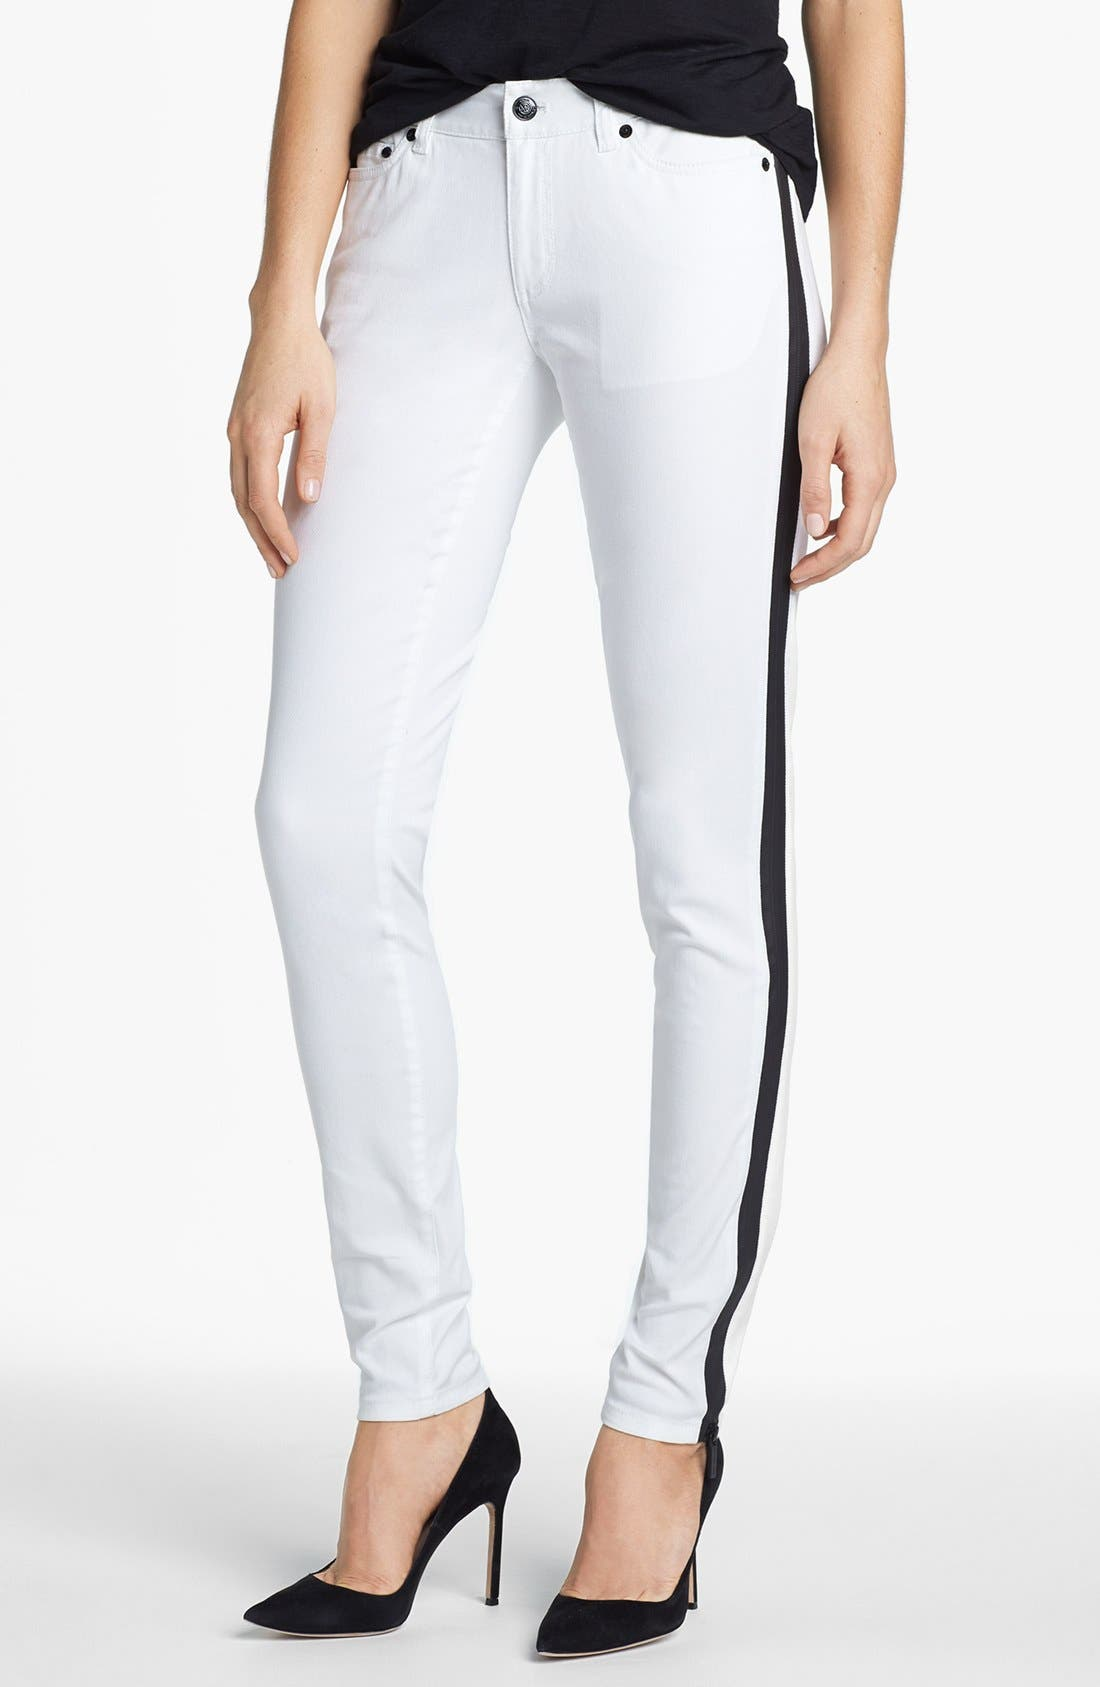 Alternate Image 1 Selected - MICHAEL Michael Kors Contrast Trim Skinny Jeans (White)